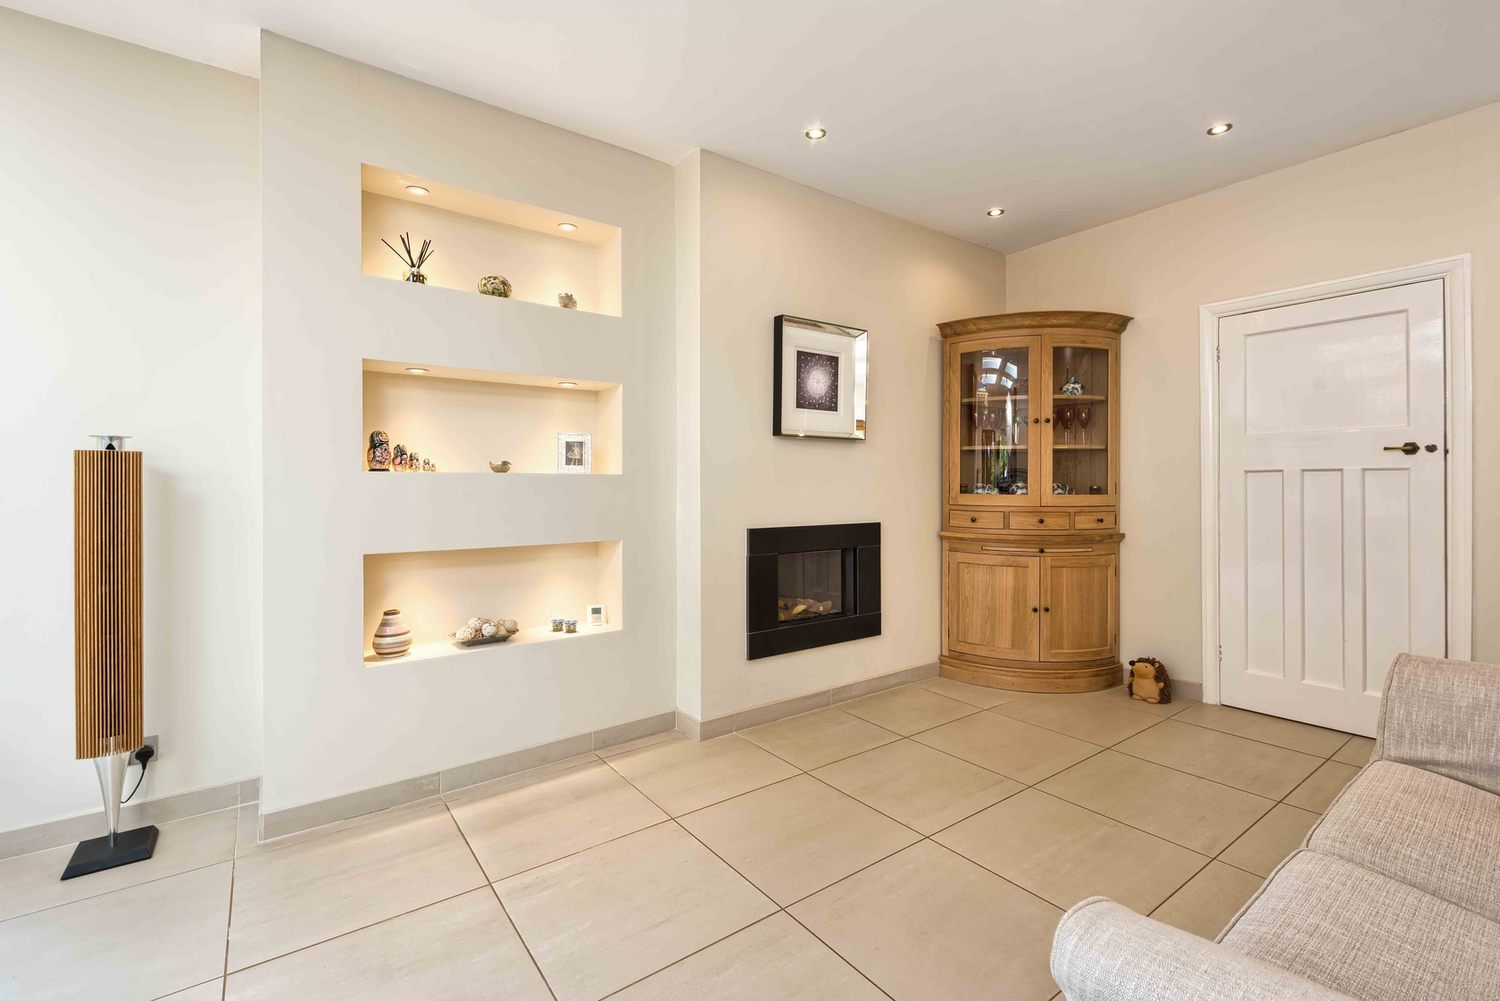 The centre piece, fireplace and cabinet a house extension by Harvey Norman Architects St Albans